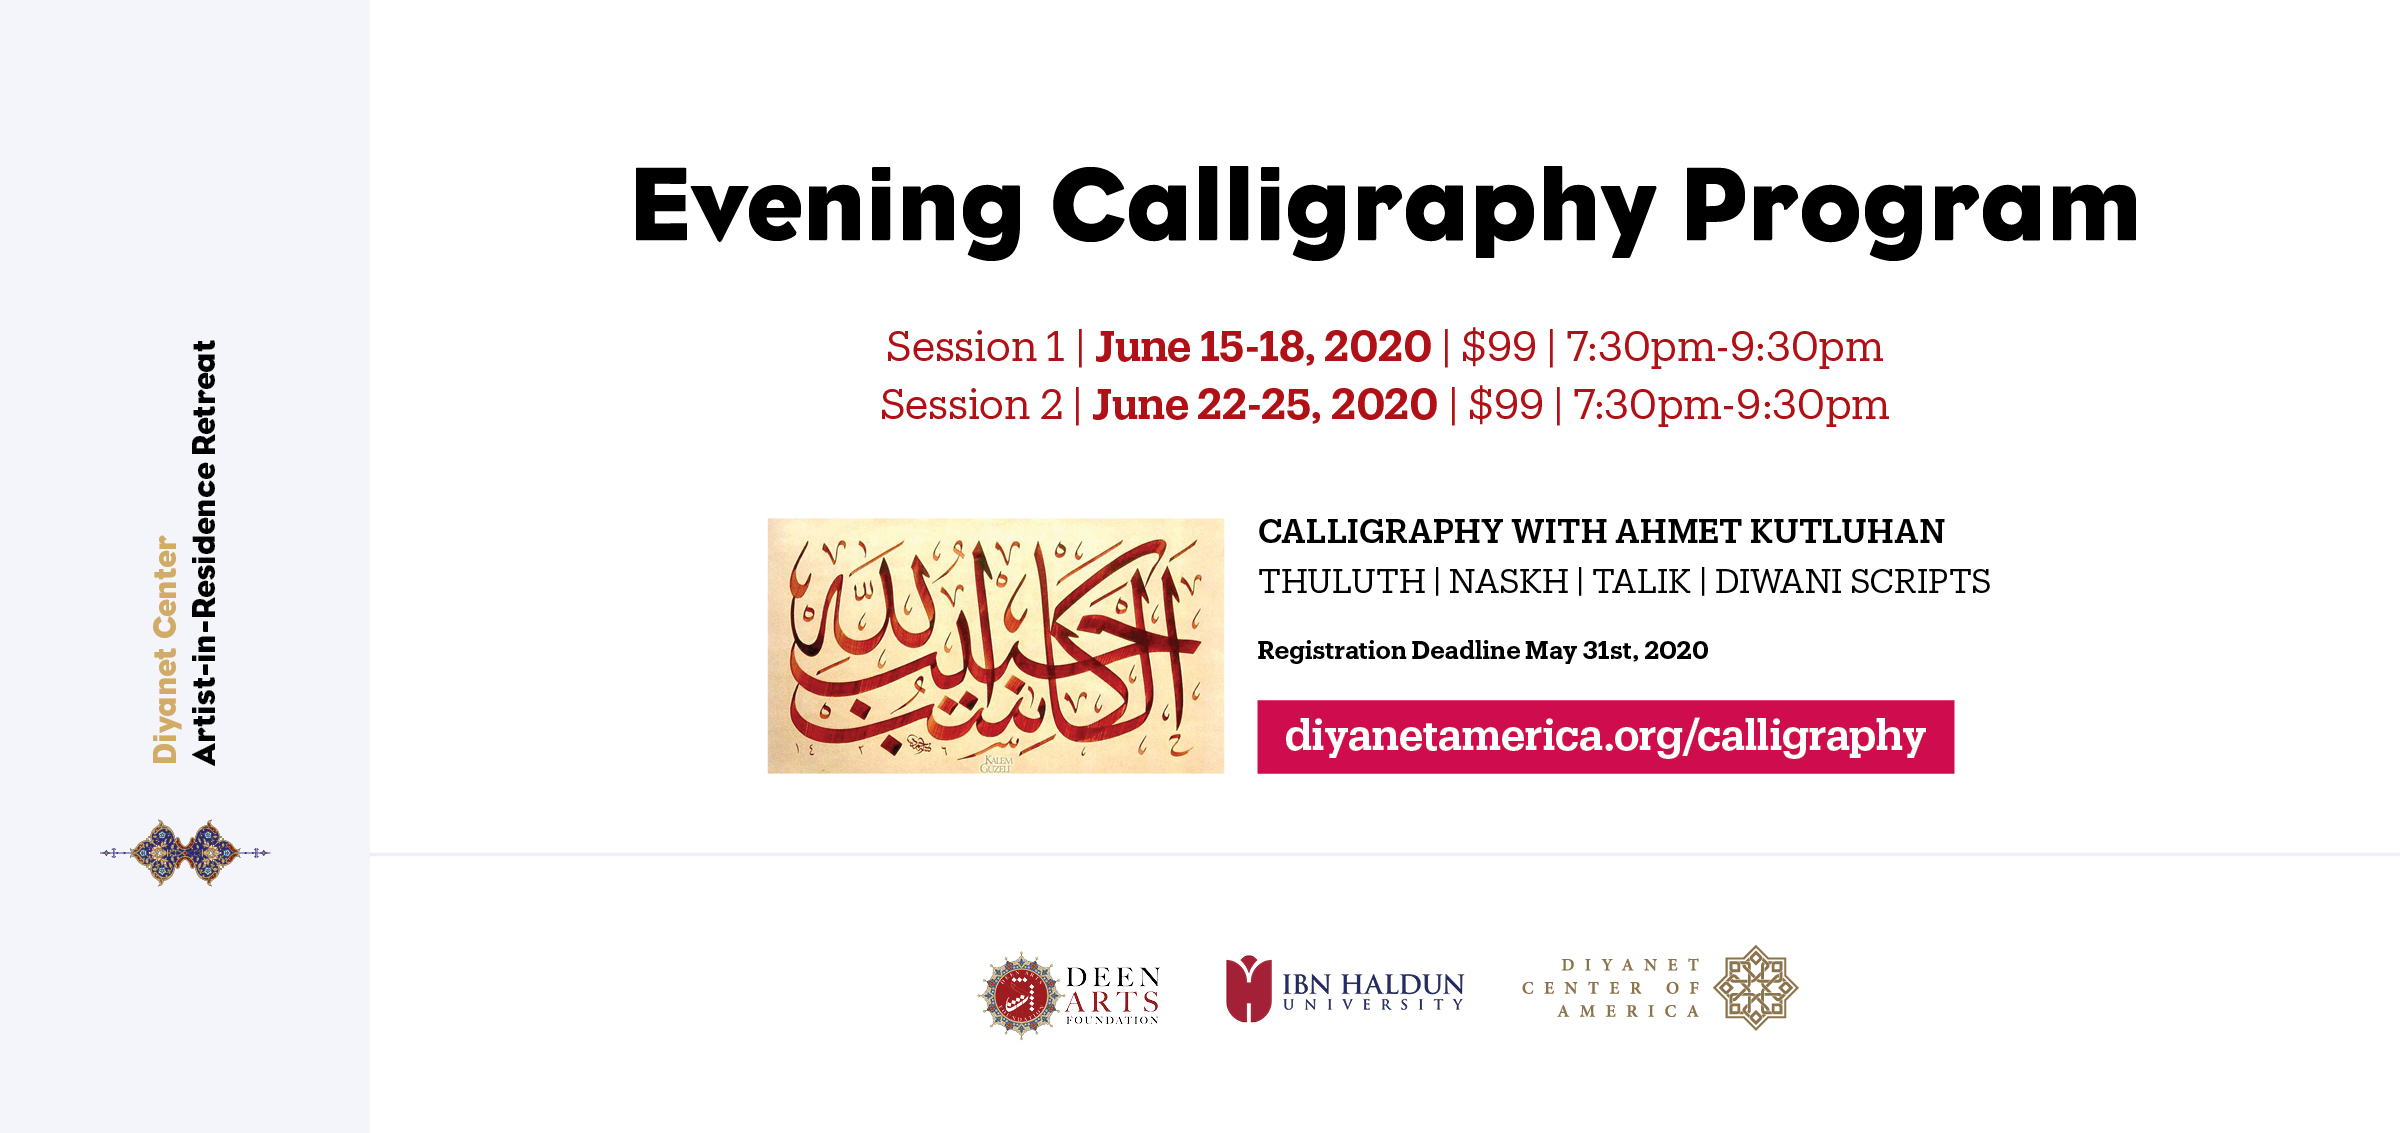 Calligraphy Evening Program - Artist-in-Residence Retreat